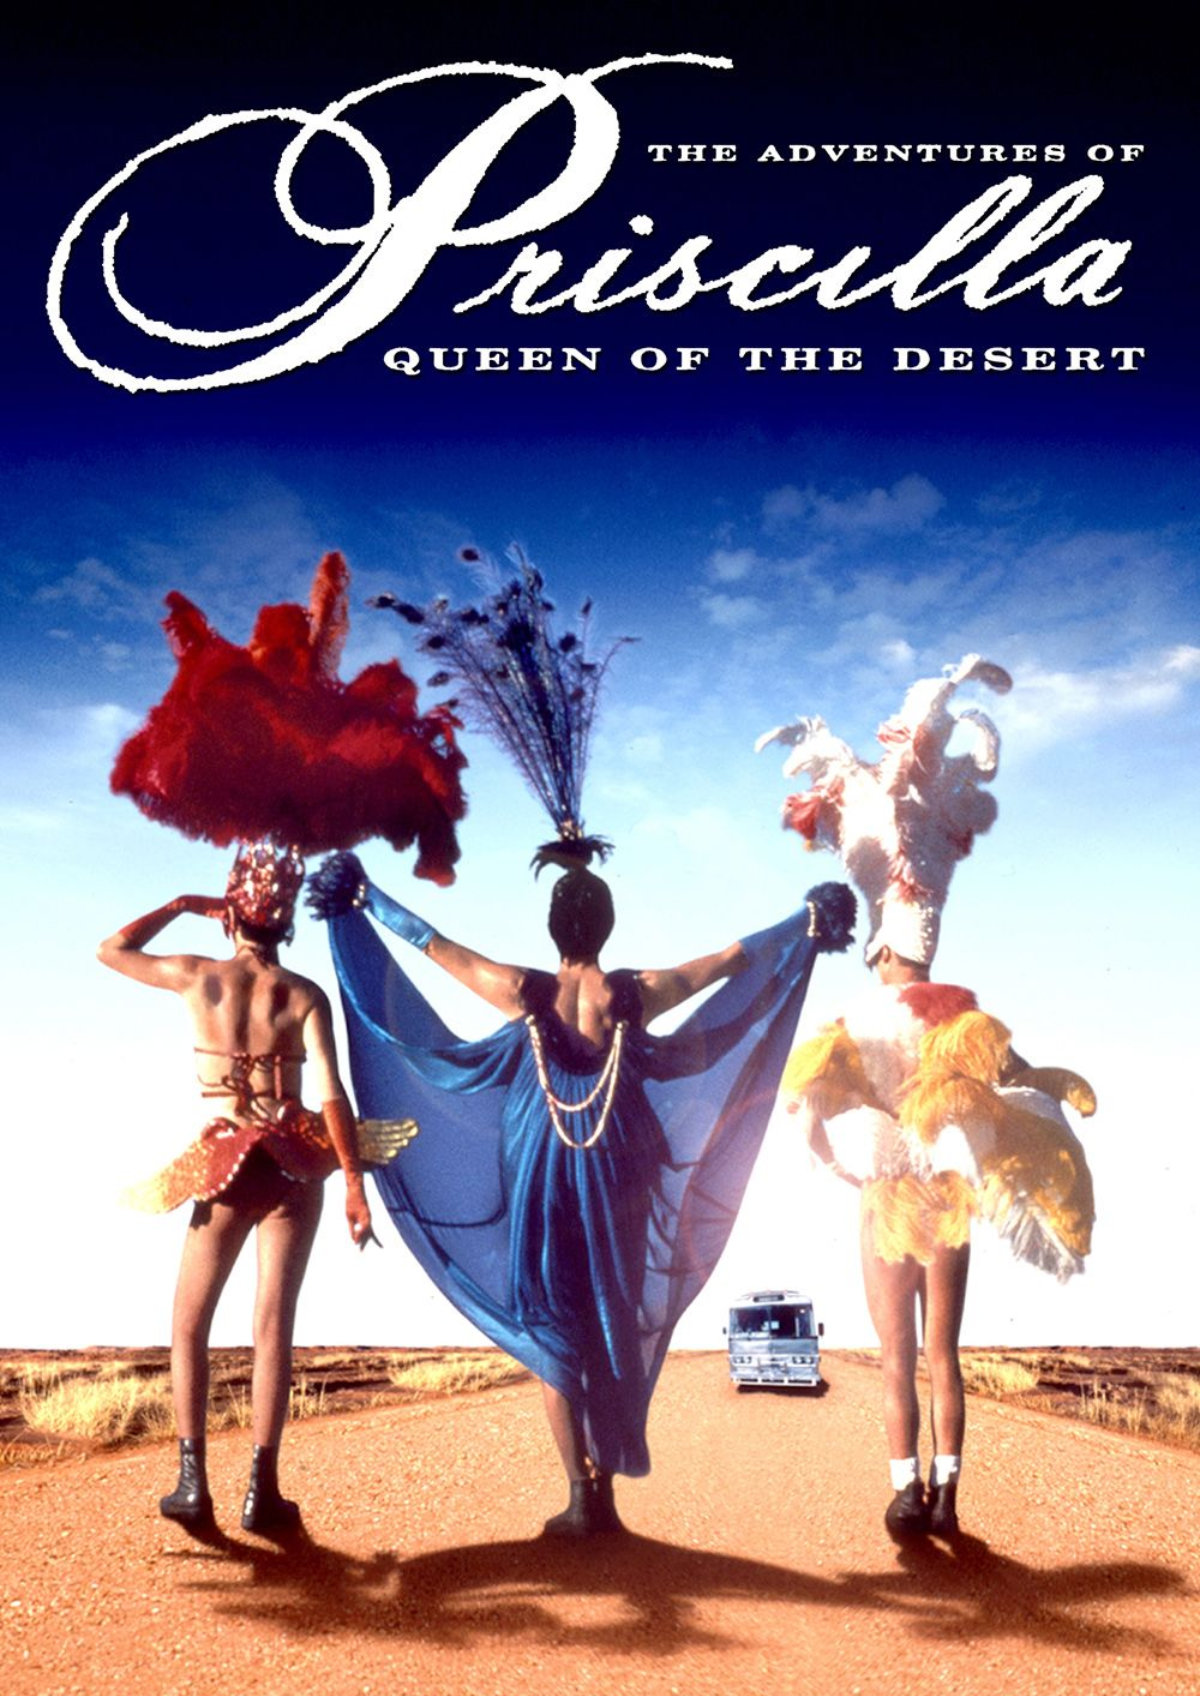 'The Adventures of Priscilla, Queen of the Desert' movie poster